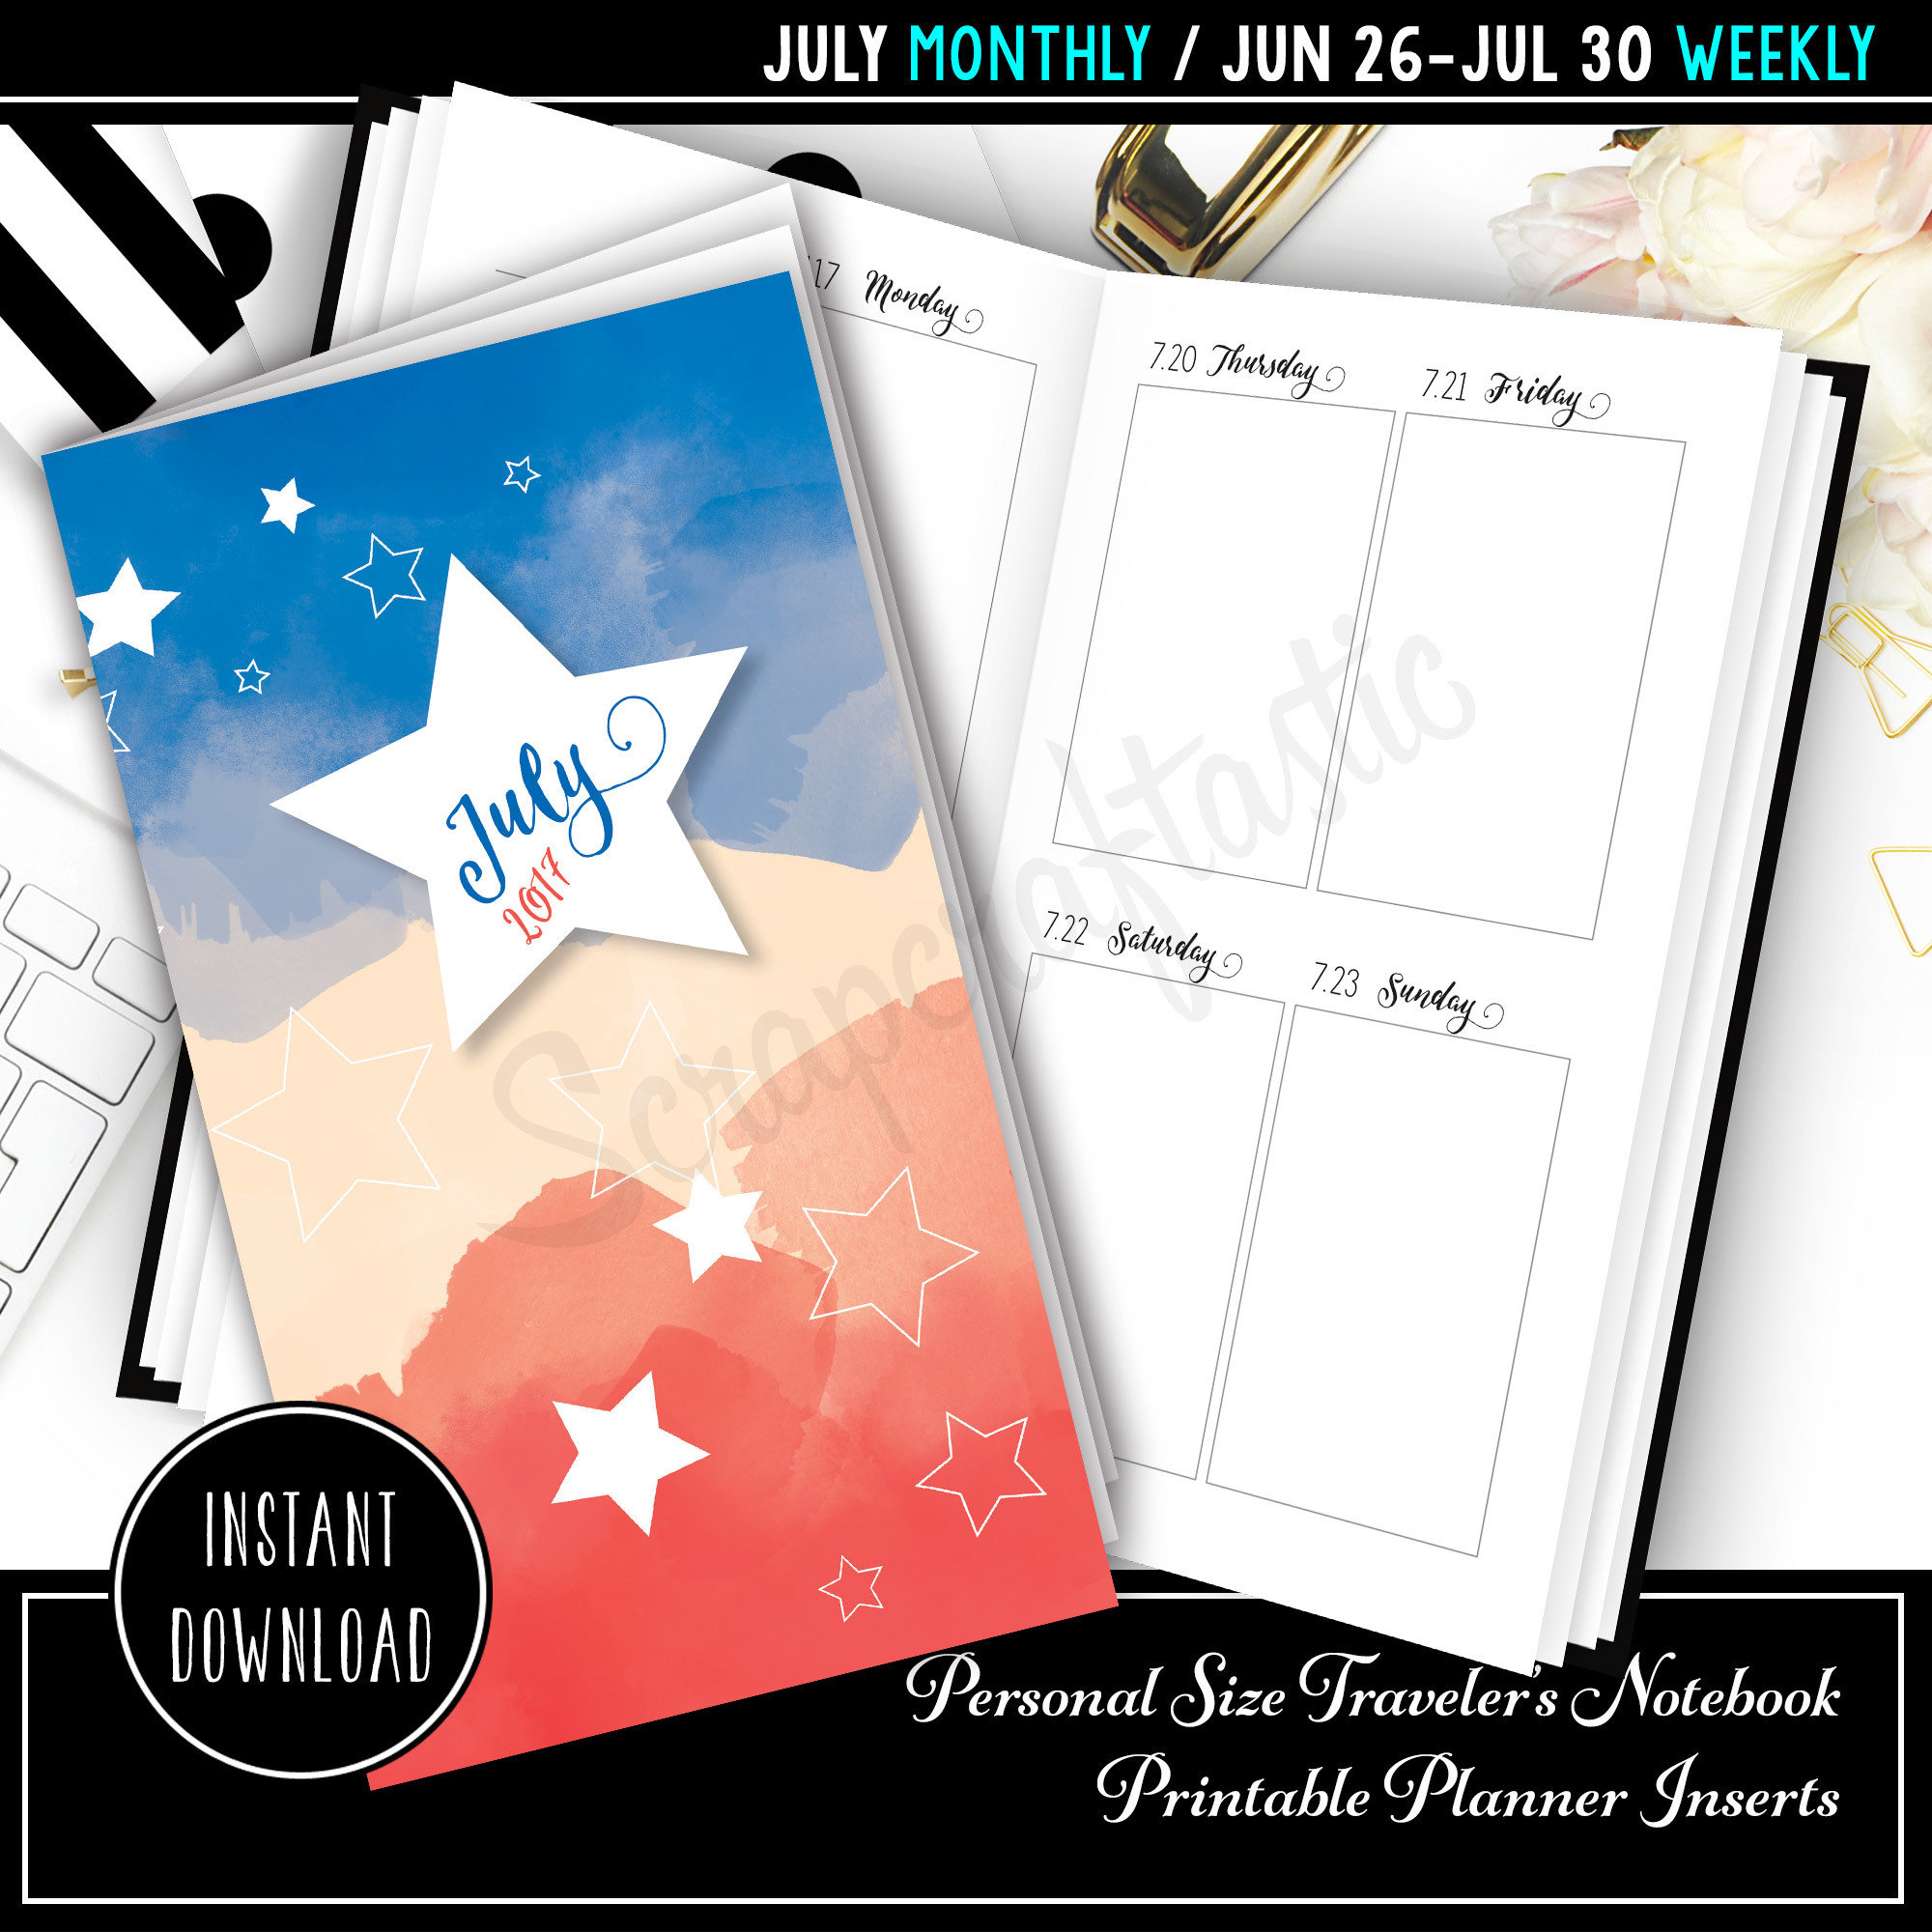 July 2017 Standard/Regular Traveler's Notebook Printable Planner Inserts 30004